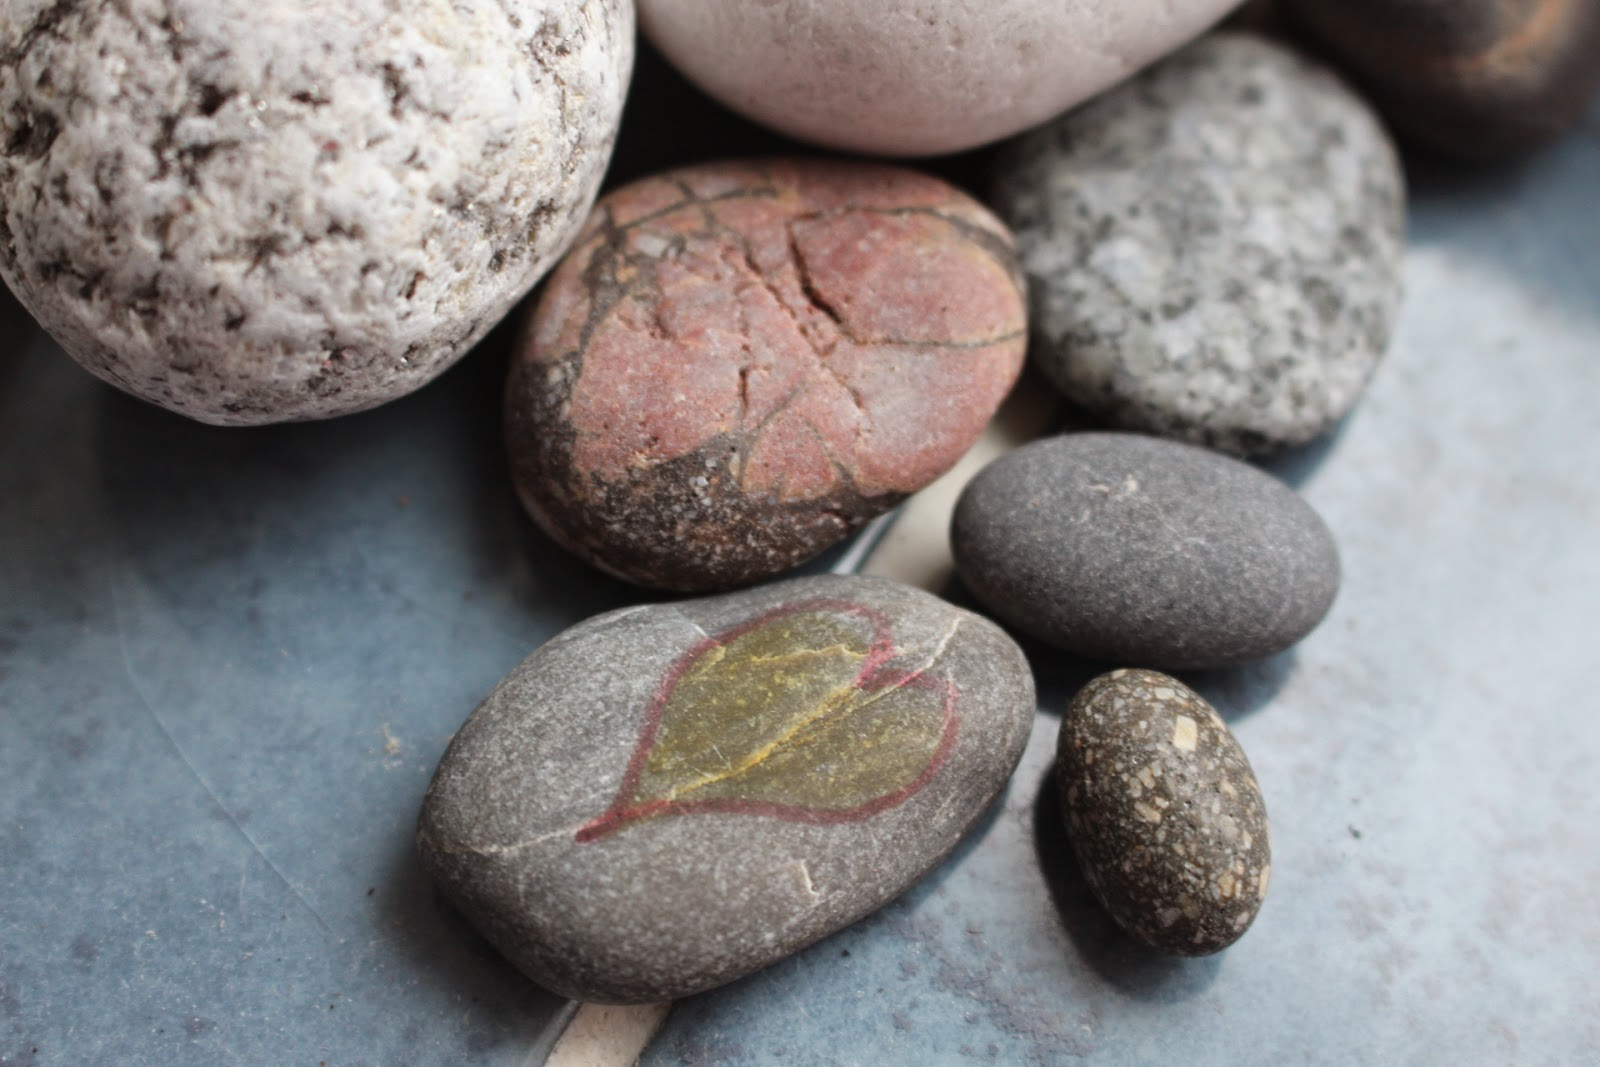 Some stones found on a beach with one having a heart design inked on it